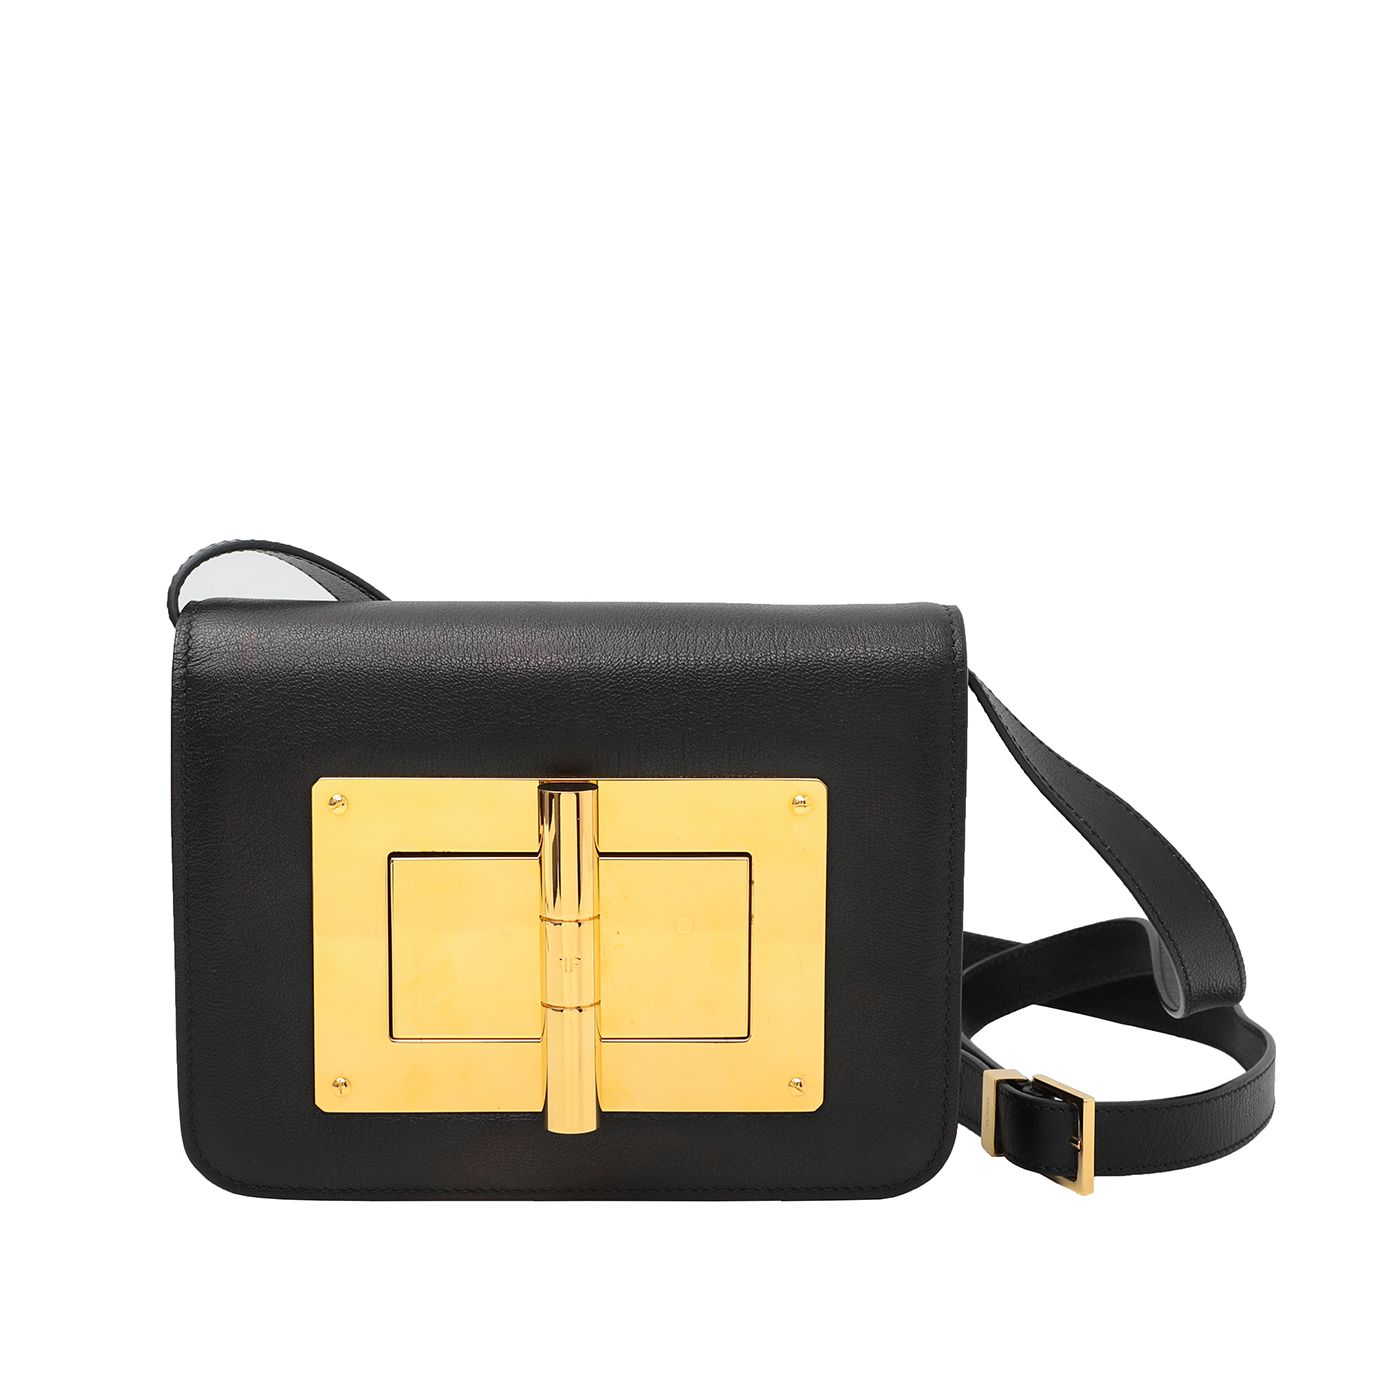 Tom Ford Black Natalia Bag Medium